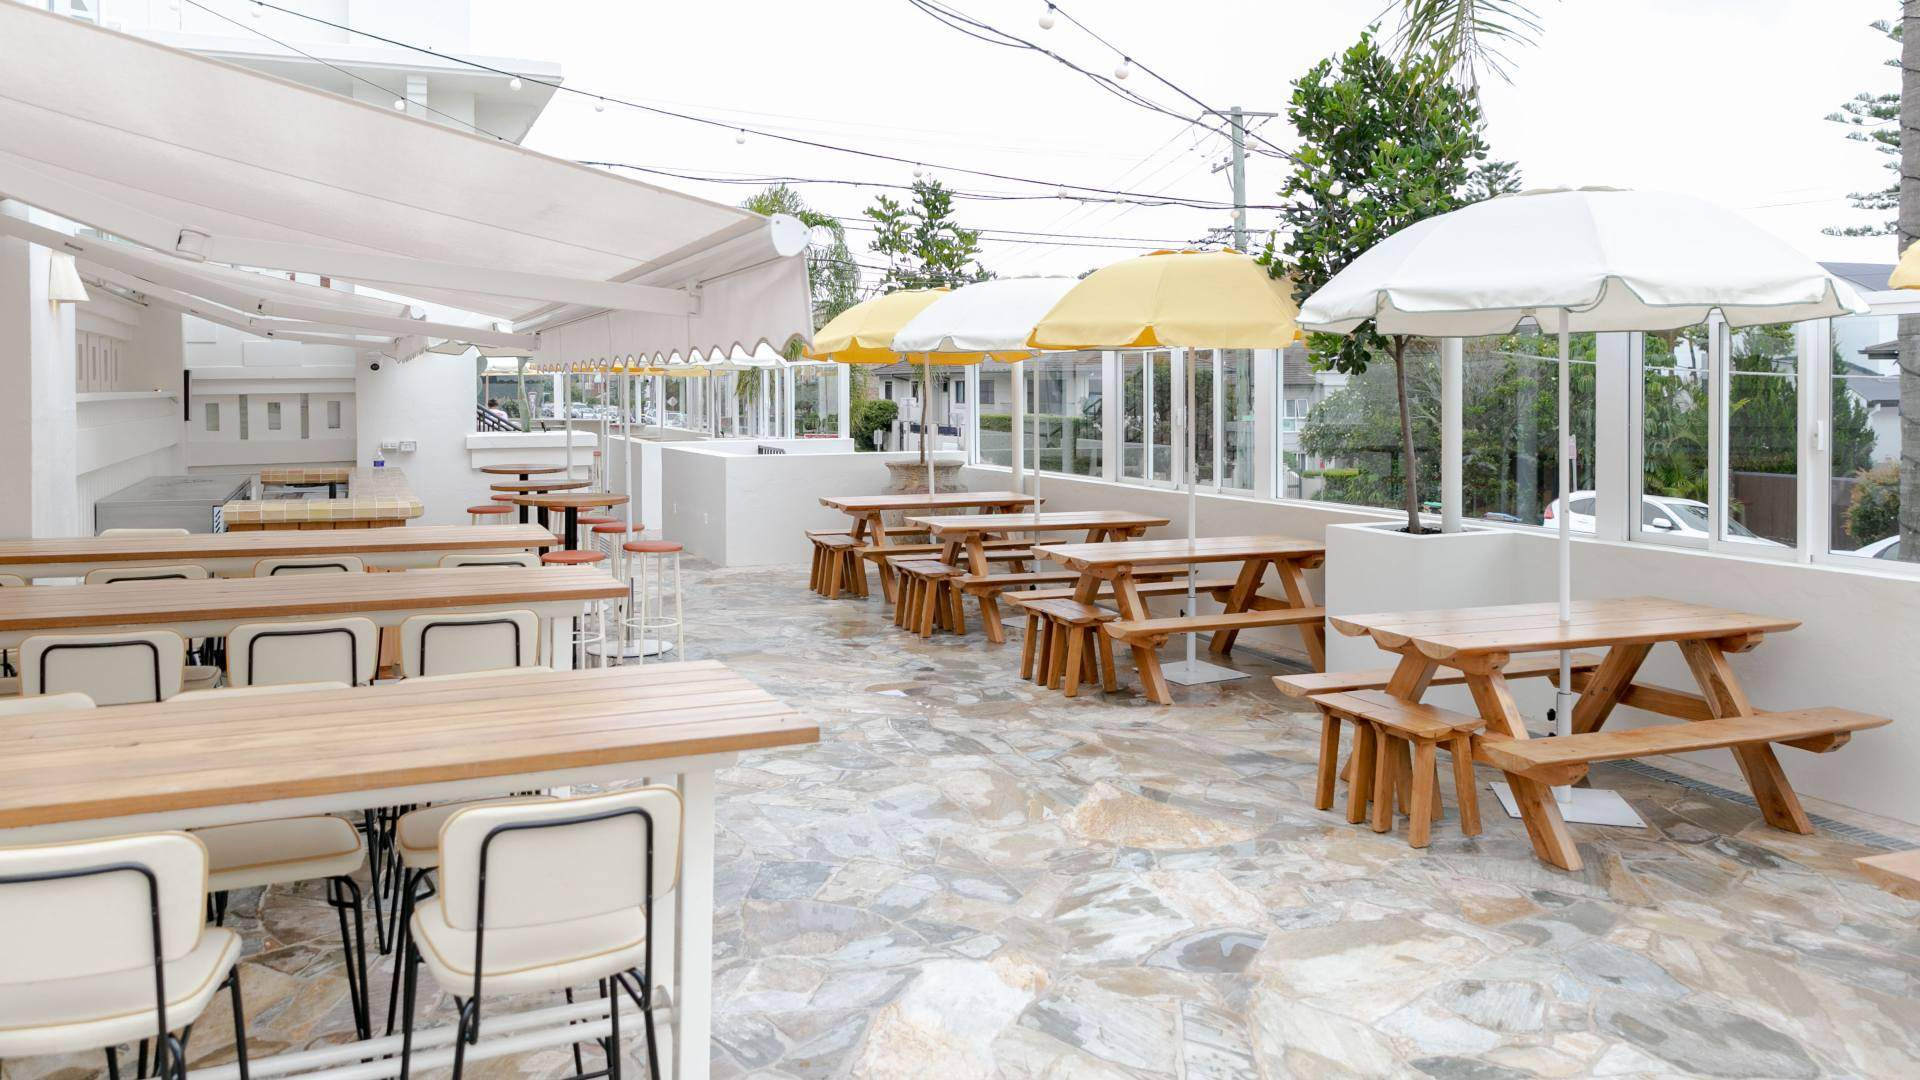 Historic Freshwater Pub Harbord Hotel Has Reopened with a Sunny Terrace and Free Live Music